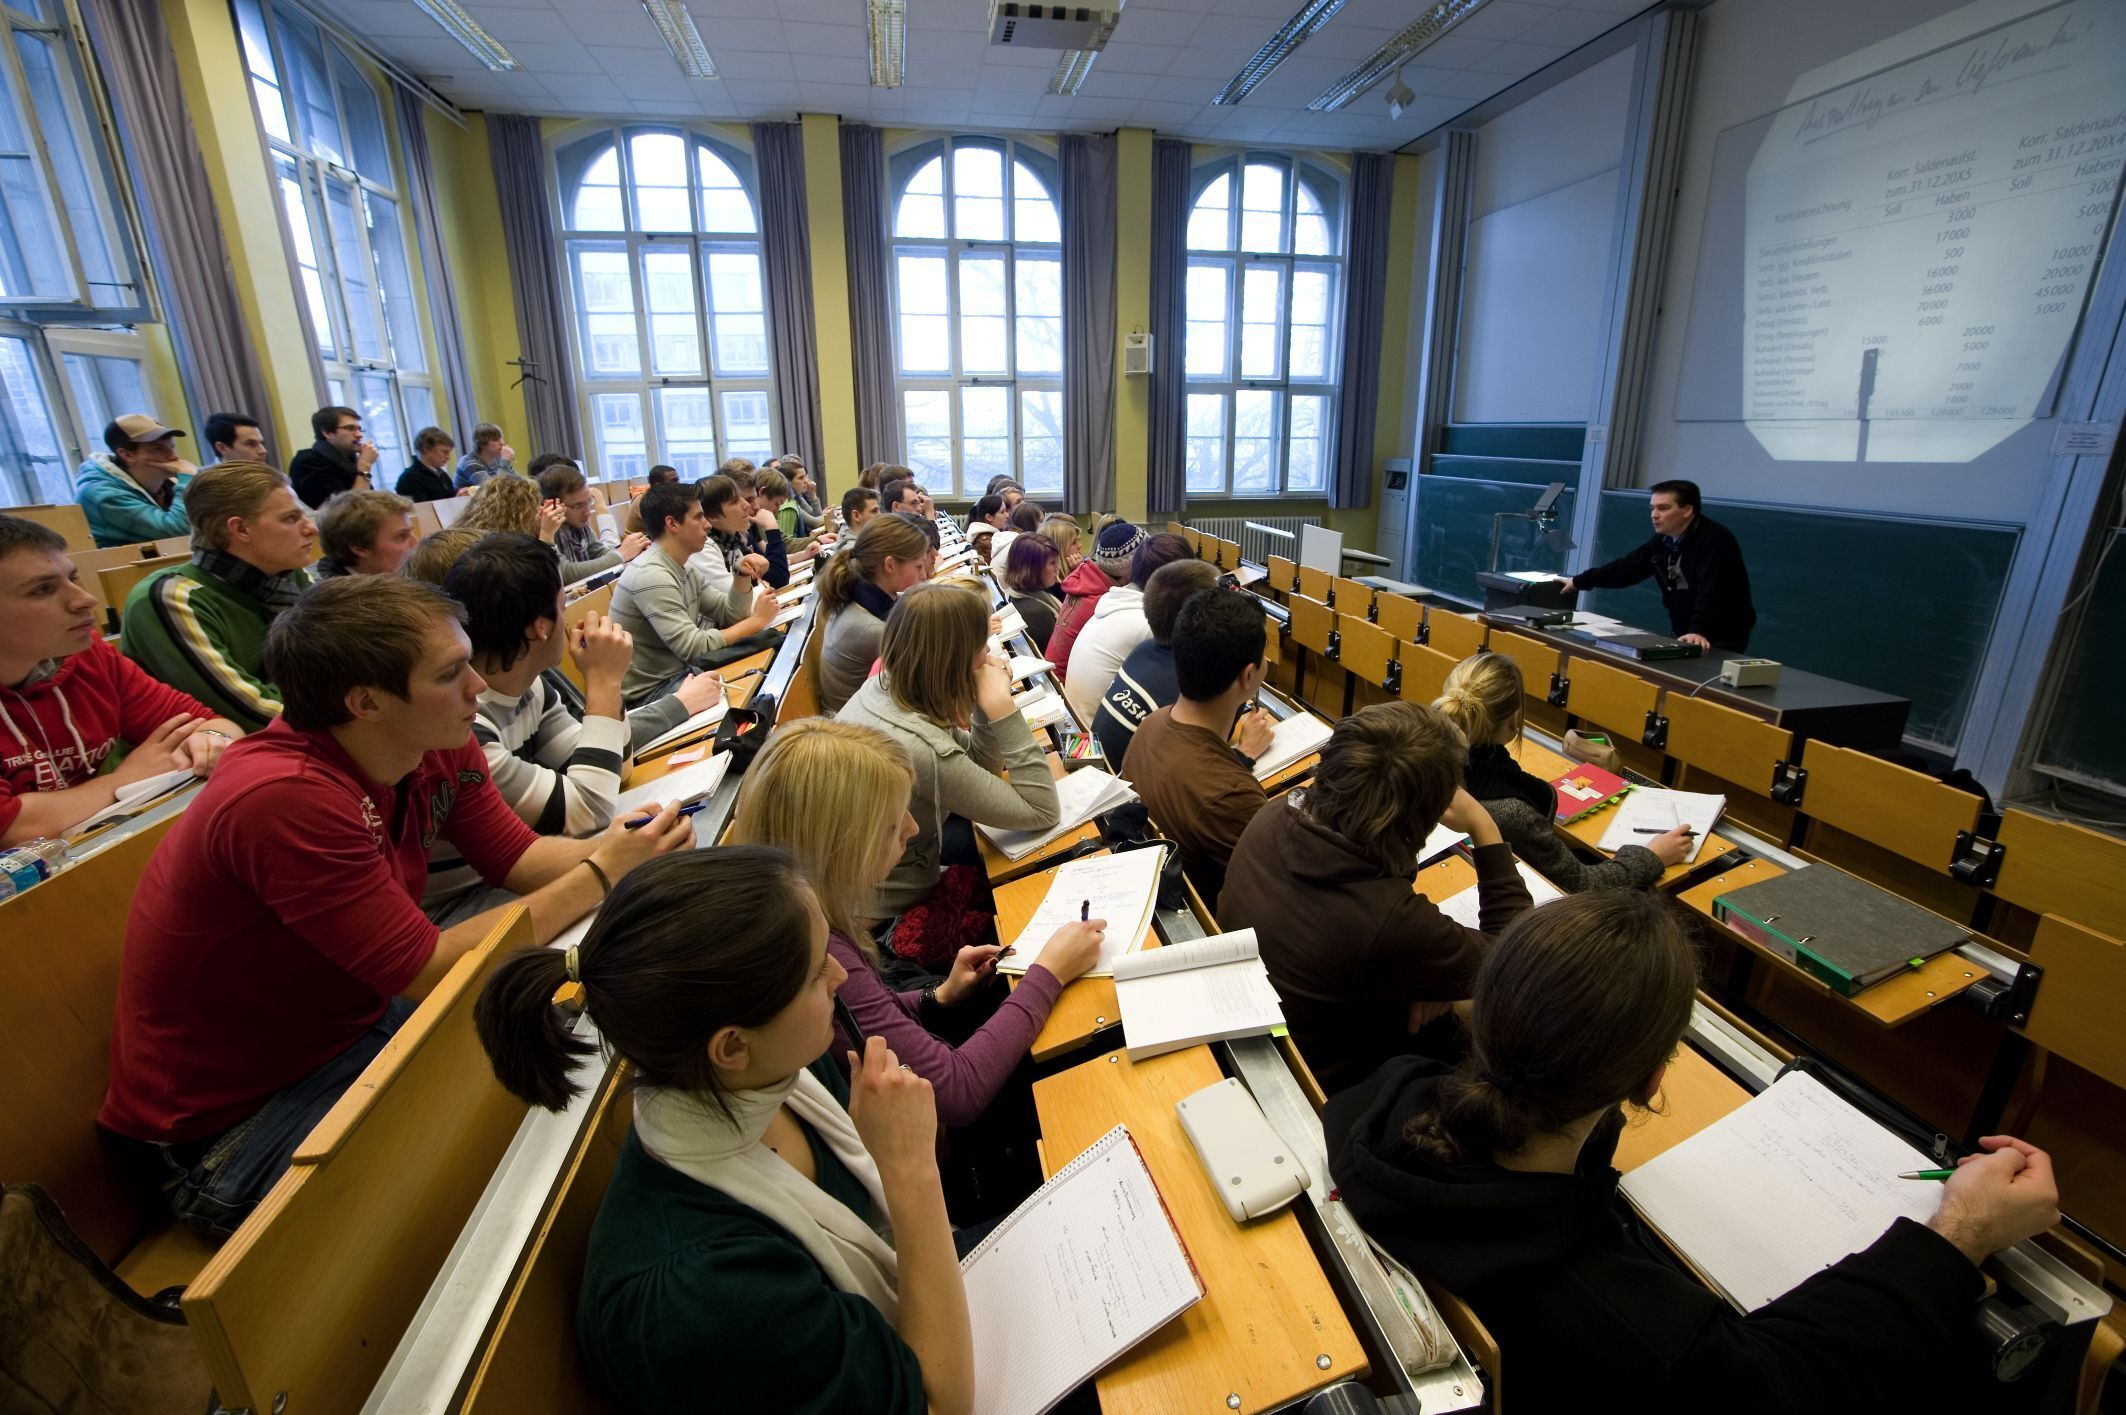 One of the Lecture Halls in the RWTH Main Building